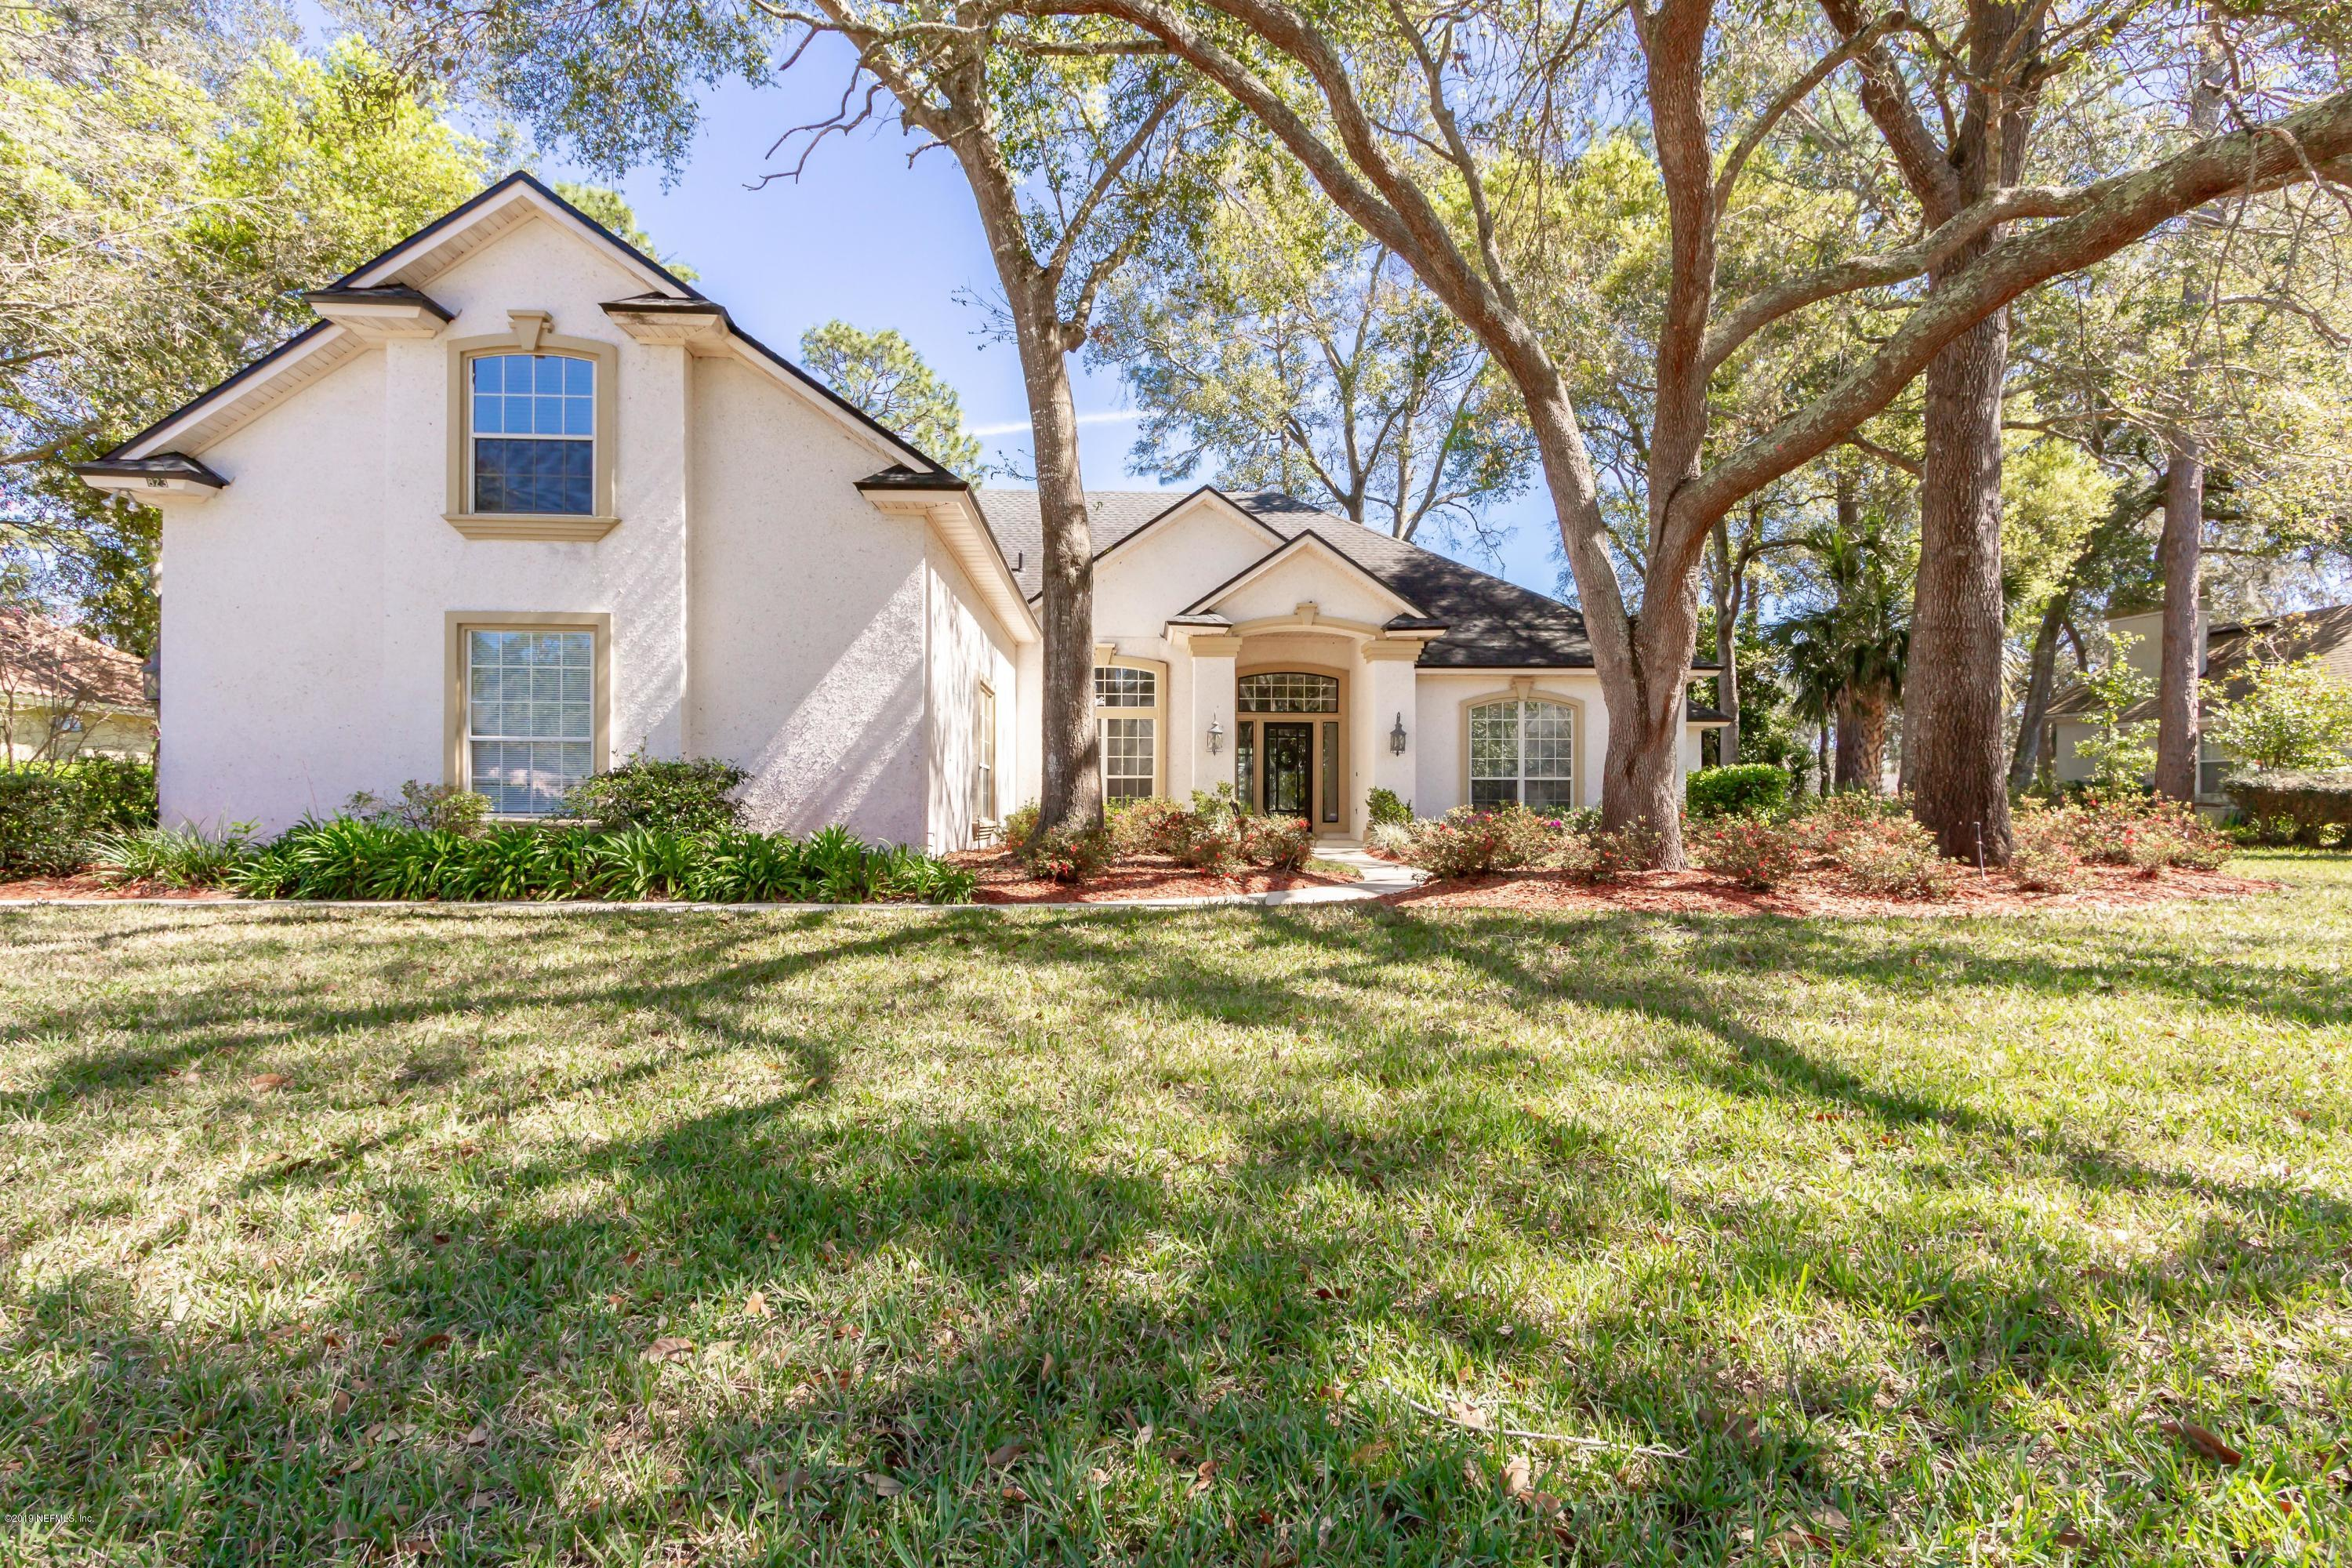 823 CHICOPIT, JACKSONVILLE, FLORIDA 32225, 5 Bedrooms Bedrooms, ,4 BathroomsBathrooms,Residential - single family,For sale,CHICOPIT,982129